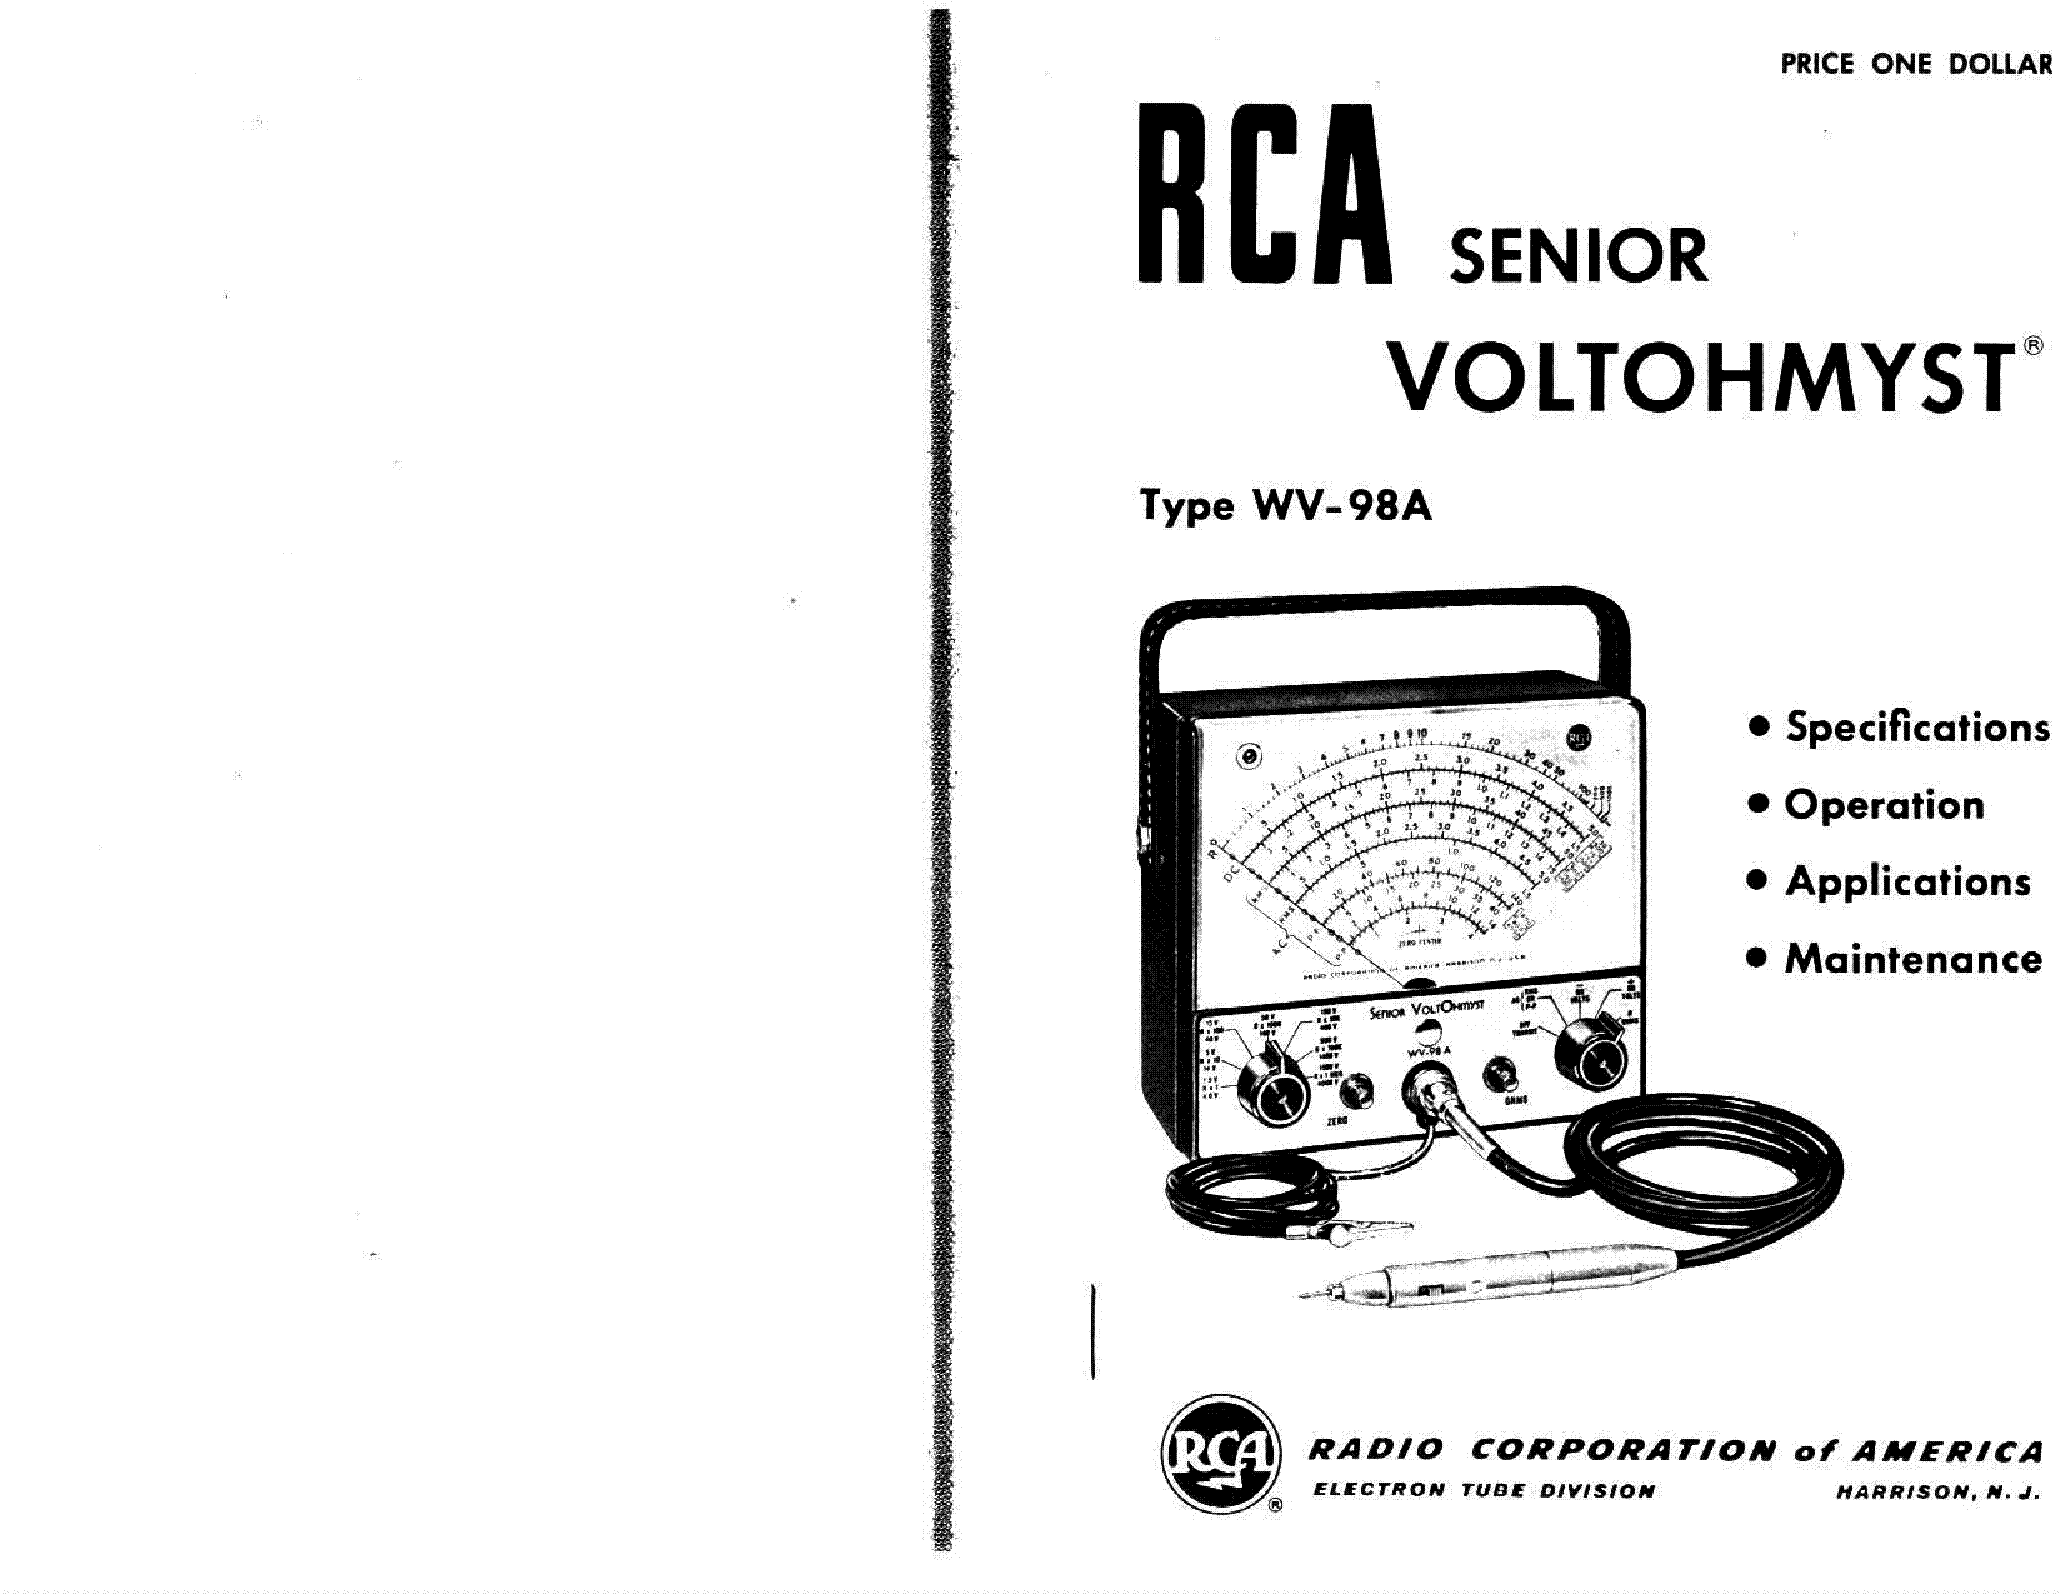 RCA WV-98A SENIOR VOLTOHMYST SM Service Manual download